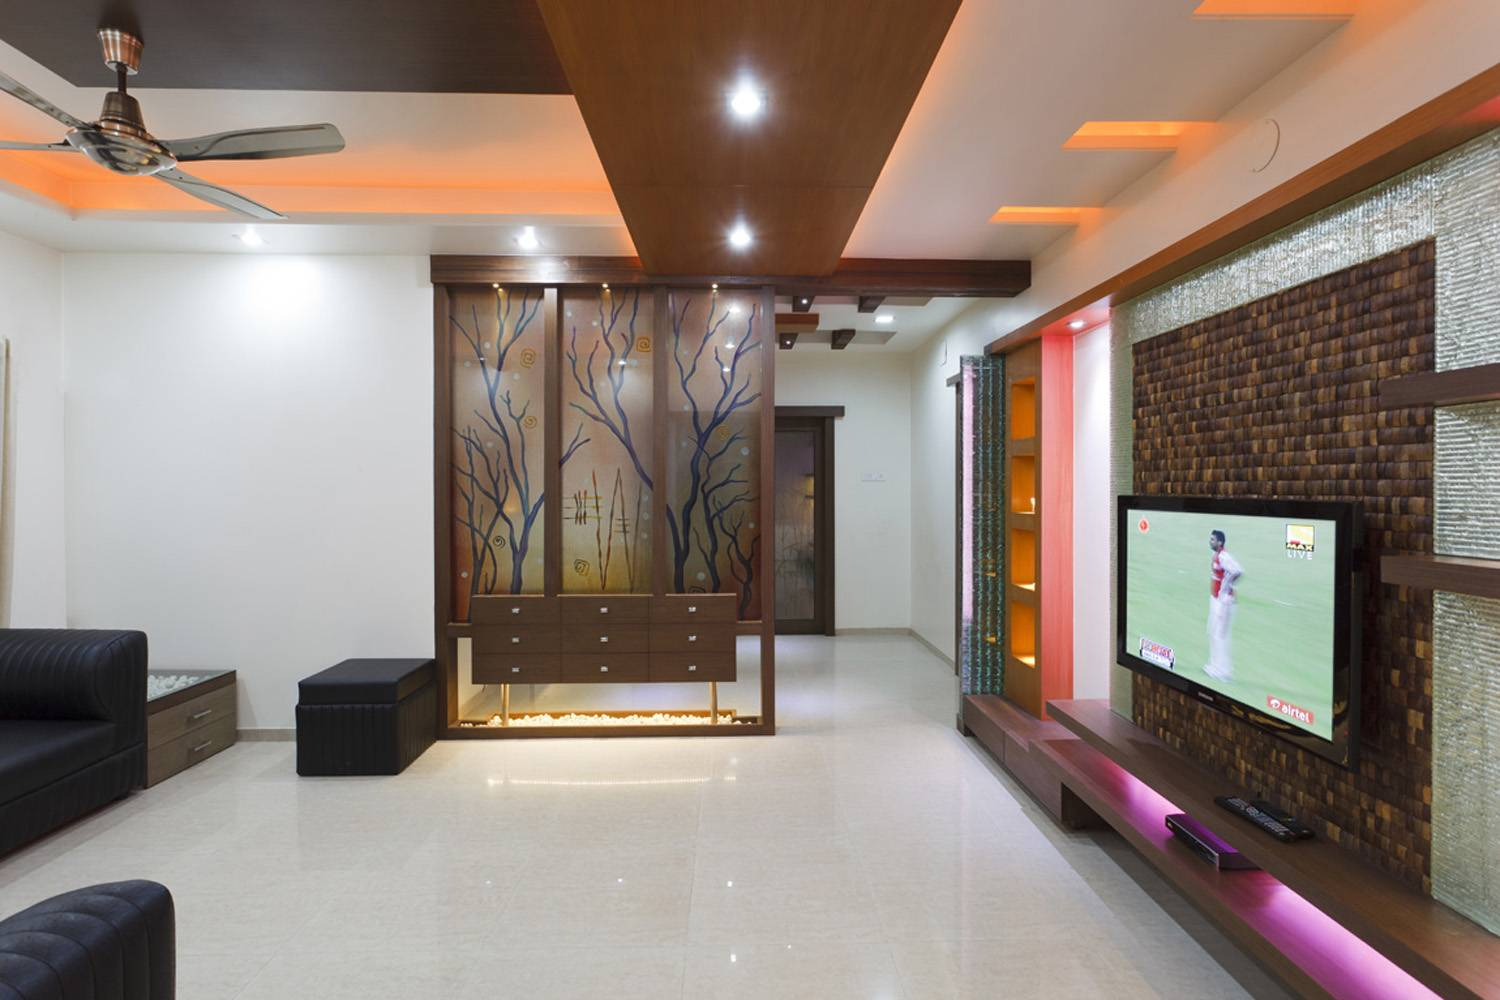 Interior designs for living room tv room interiors pune india - Modern intiror room ...